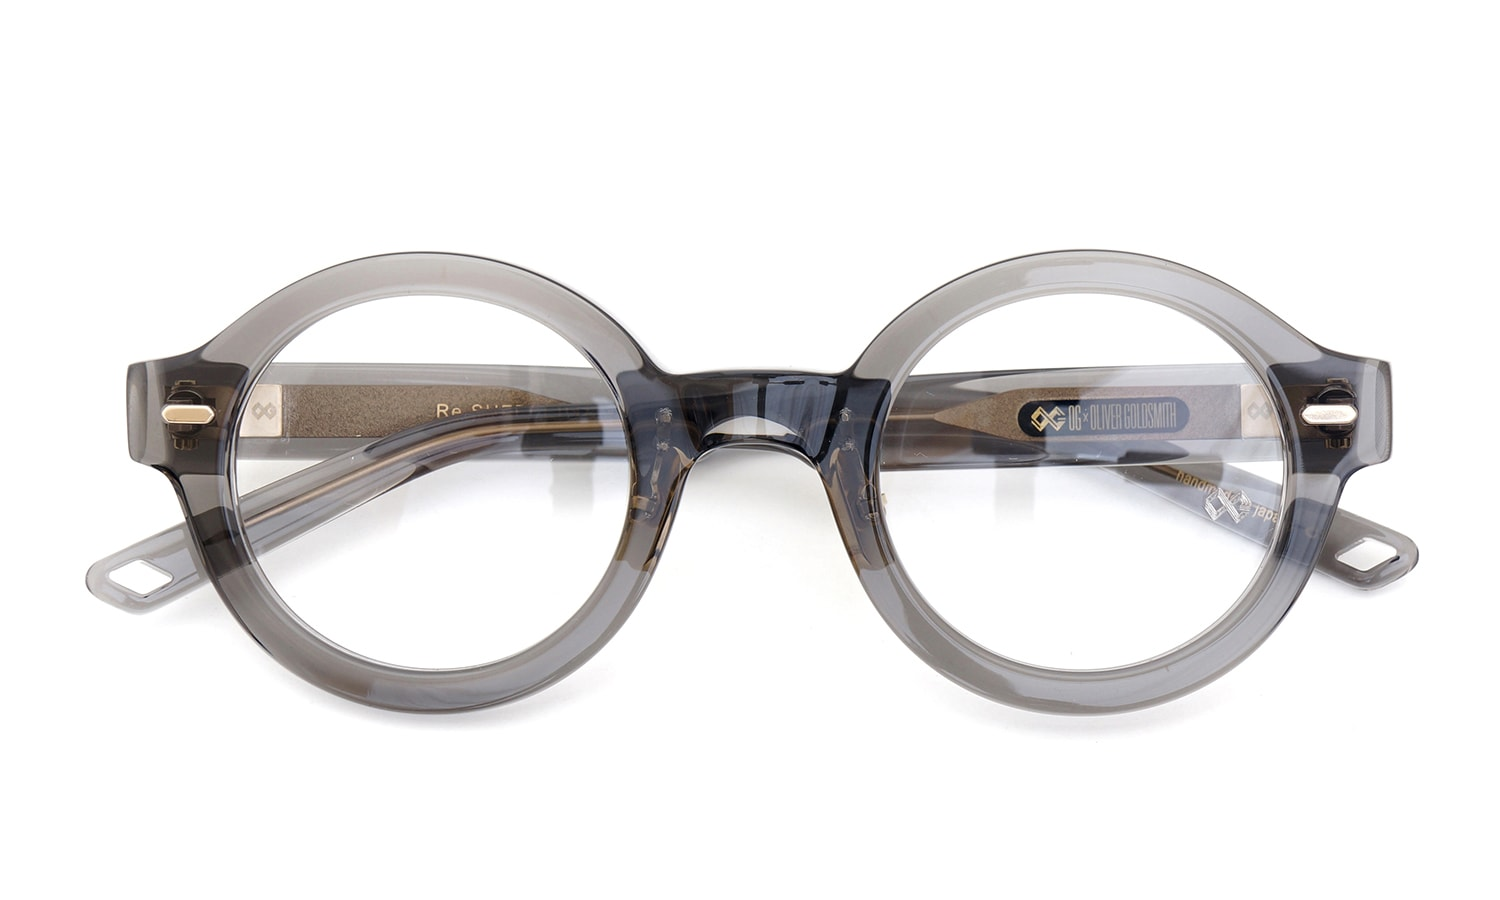 OG × OLIVER GOLDSMITH Re:SHEPPERTON 45 リ:シェパートン 4